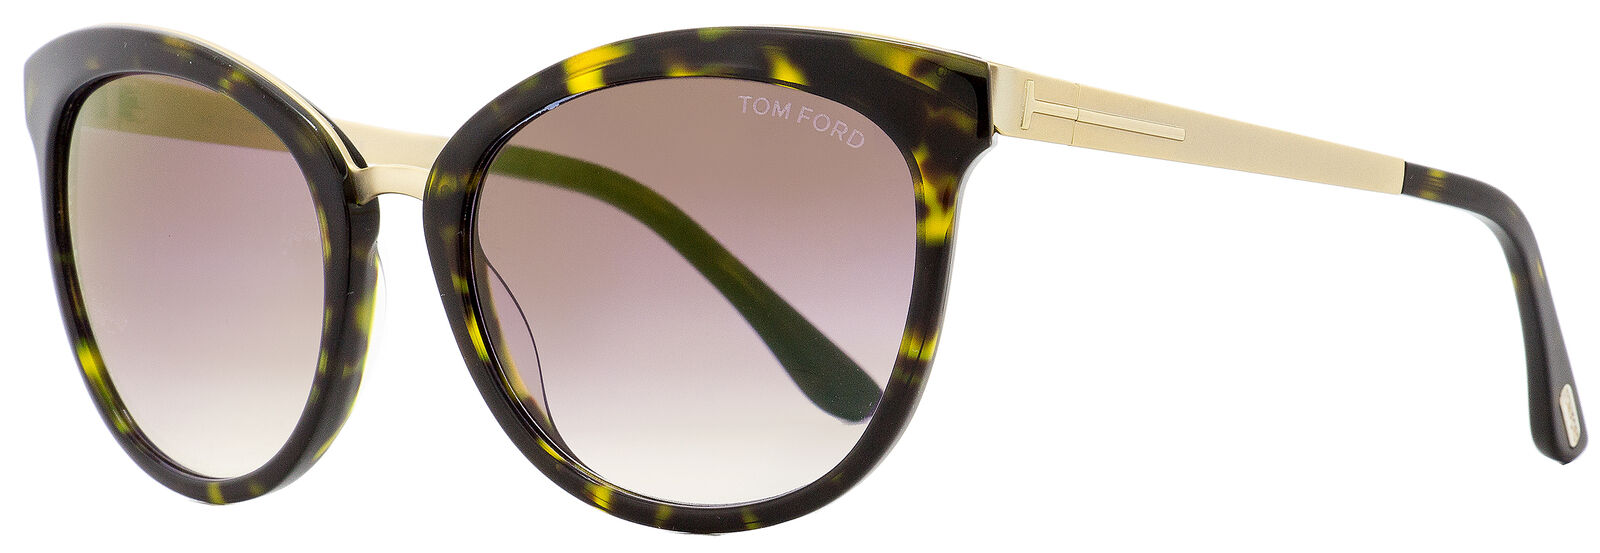 57a9c4a2e10 ... Brown UPC 664689757718 product image for Tom Ford - Emma Ft 0461